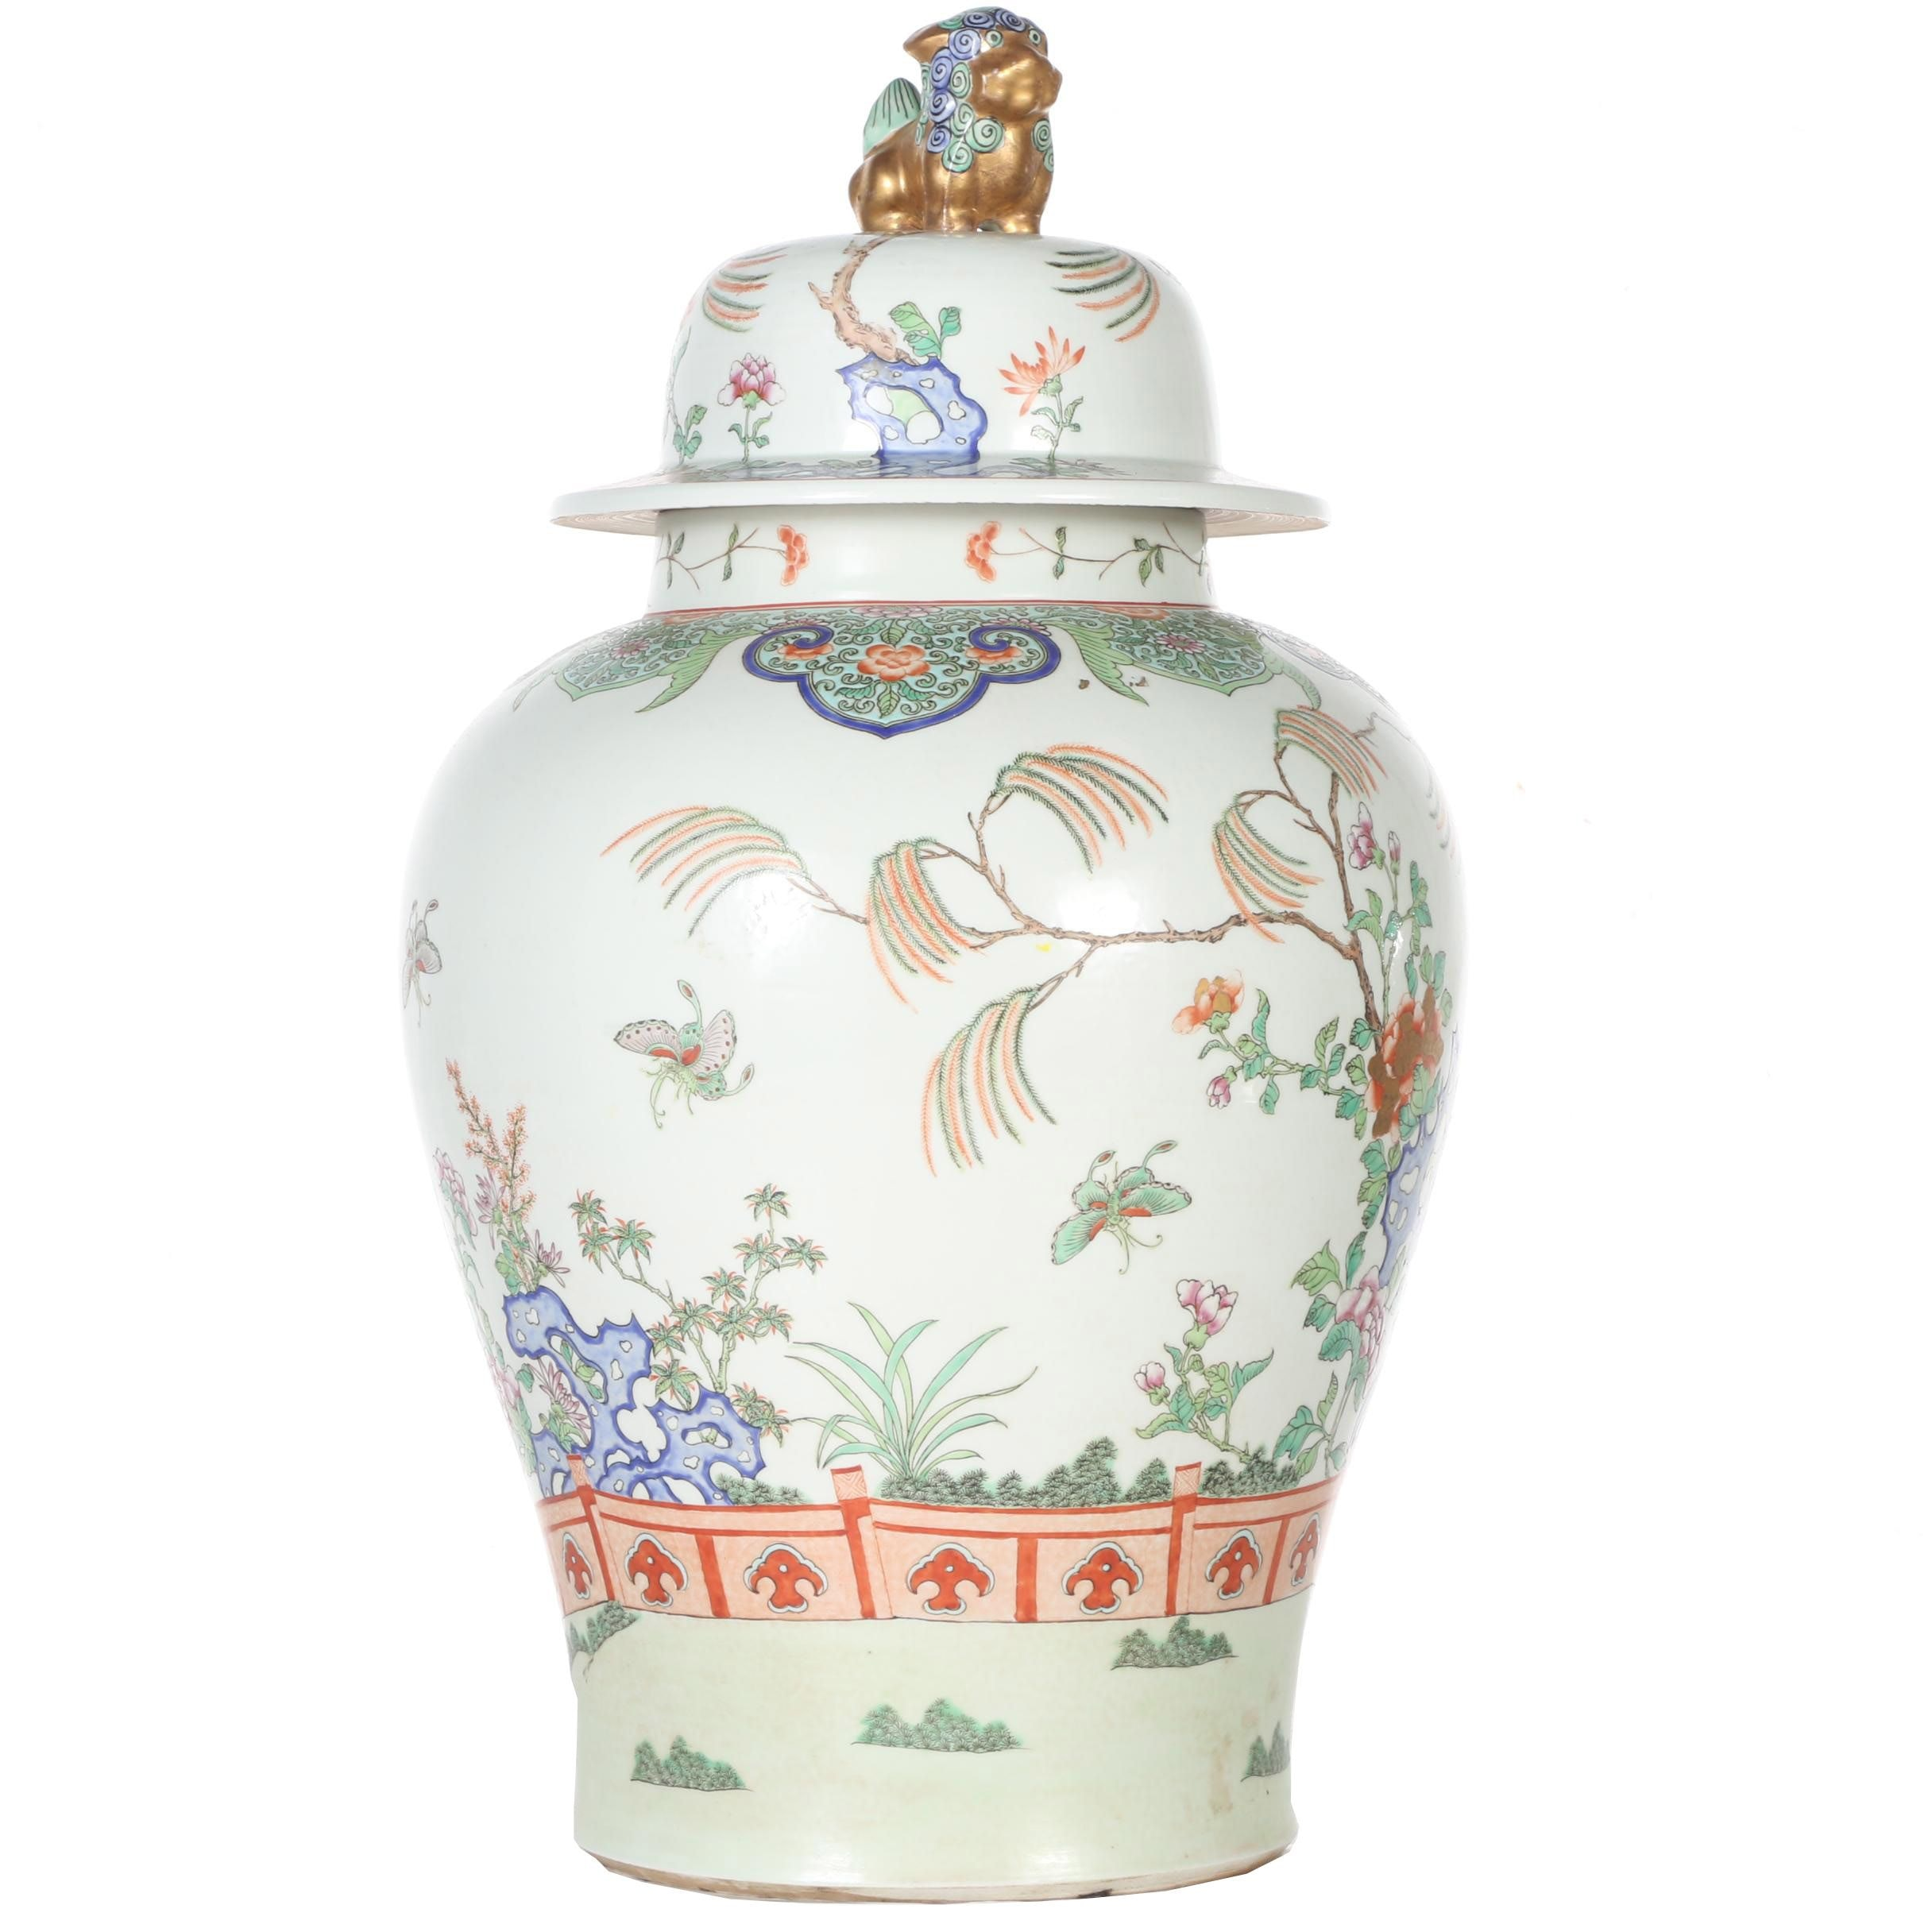 Replica Chinese Vase from the Carter Library